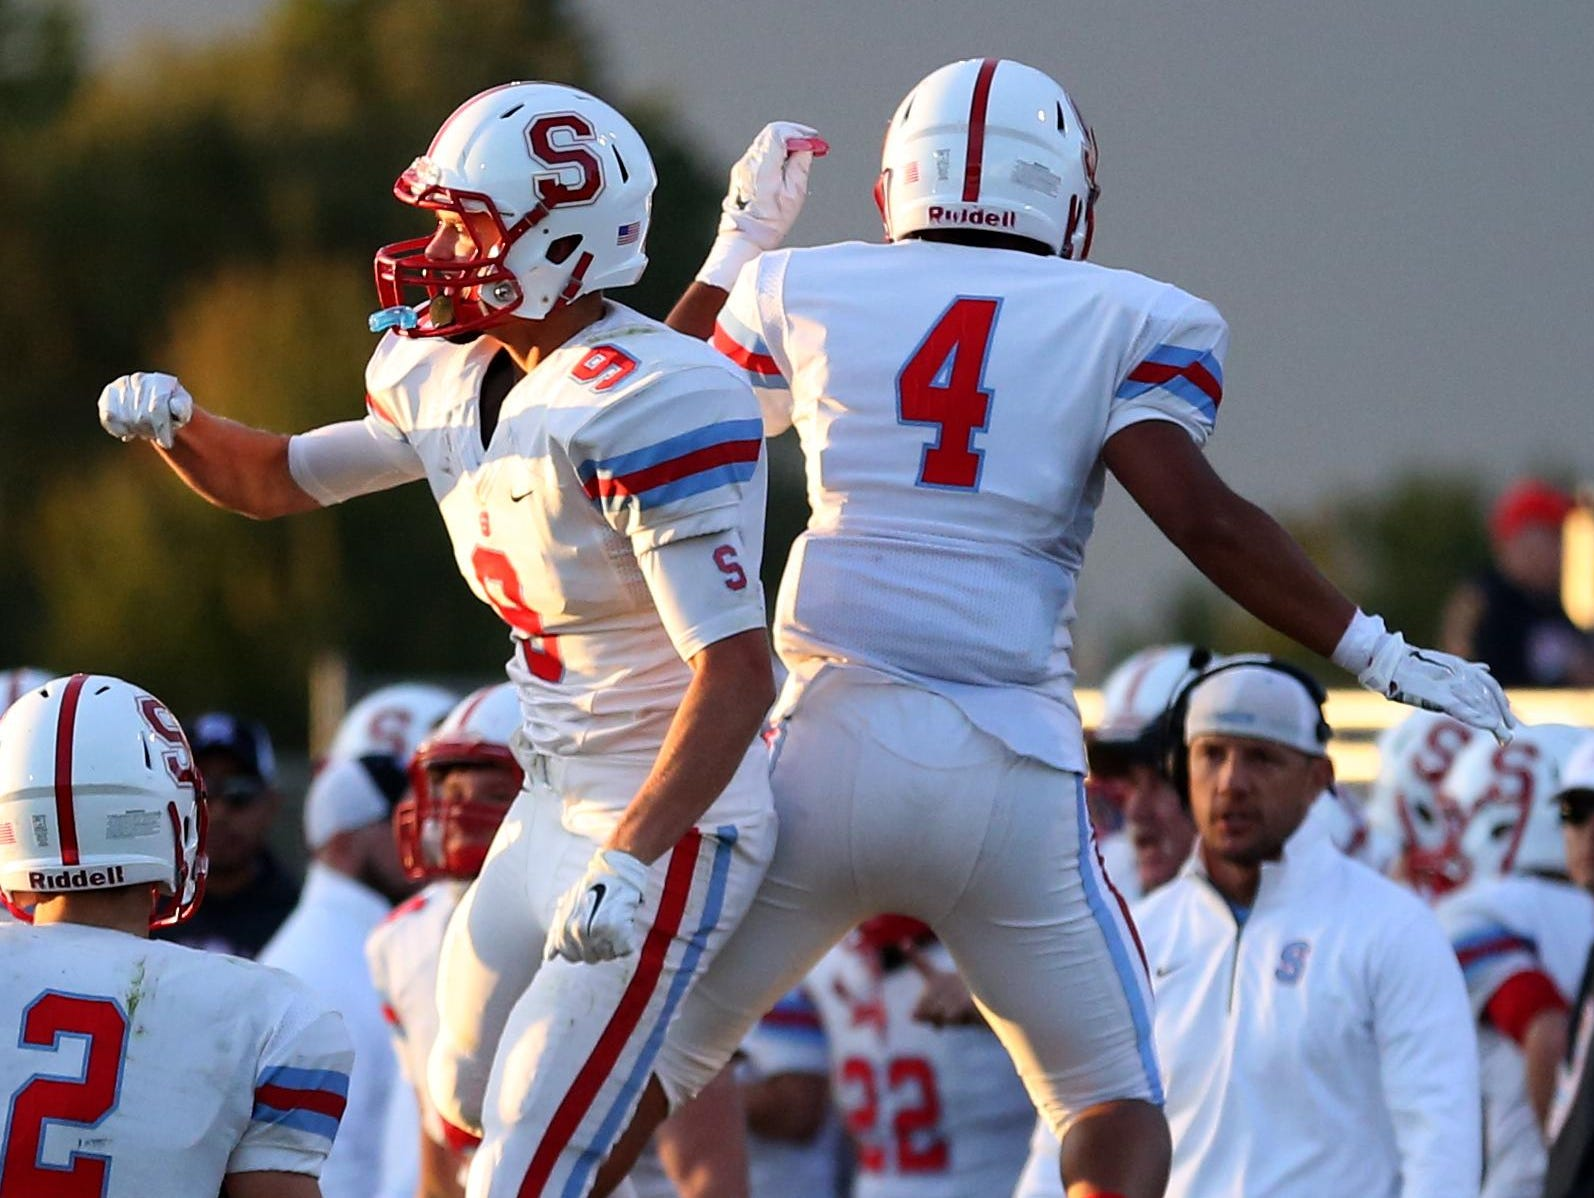 South Salem's Gibson Hohberg (9) and Tony Phong (4) celebrate Hohberg's touchdown in the first half of the South Salem vs. McKay football game at McKay High School in Salem on Friday, Sept. 4, 2015. South Salem leads 26-7 at the half.